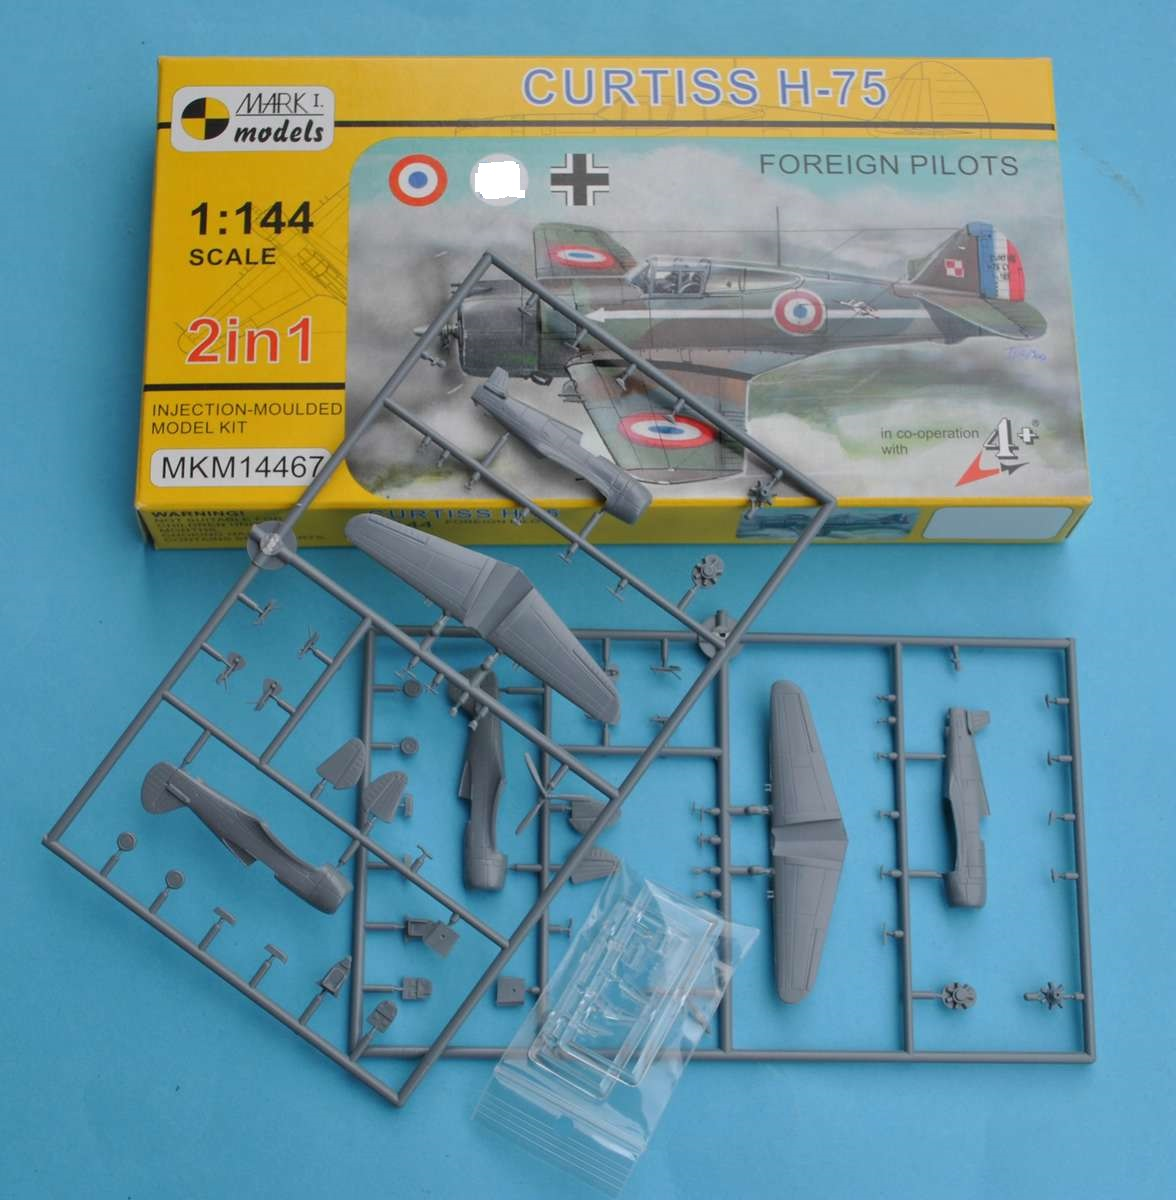 Mark-I-Models-MKM-14467-Curtiss-H-75-Frankreich-Finnland-Luftwaffe-15 Curtiss H-75 in 1:144 von Mark I Models ( MKM 14467)